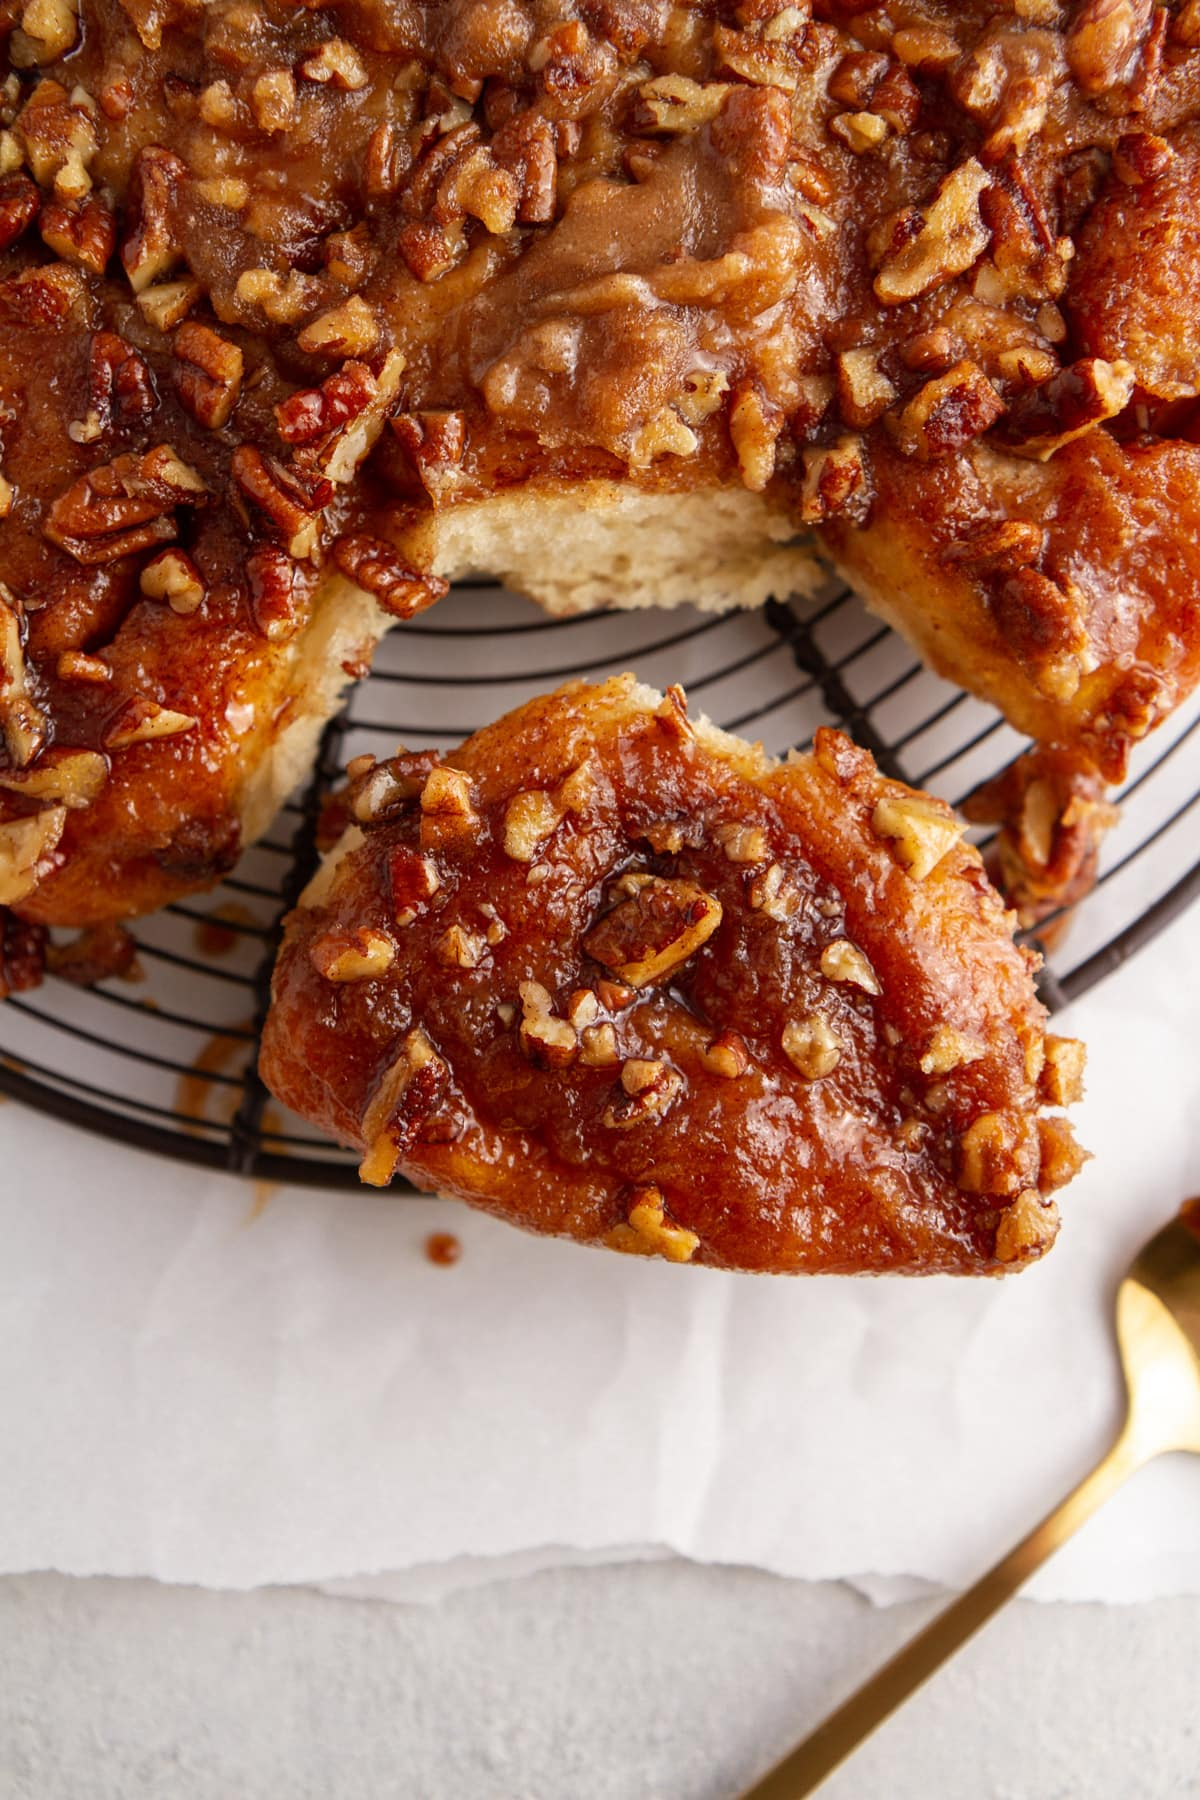 overnight caramel pecan sticky buns on cooling rack